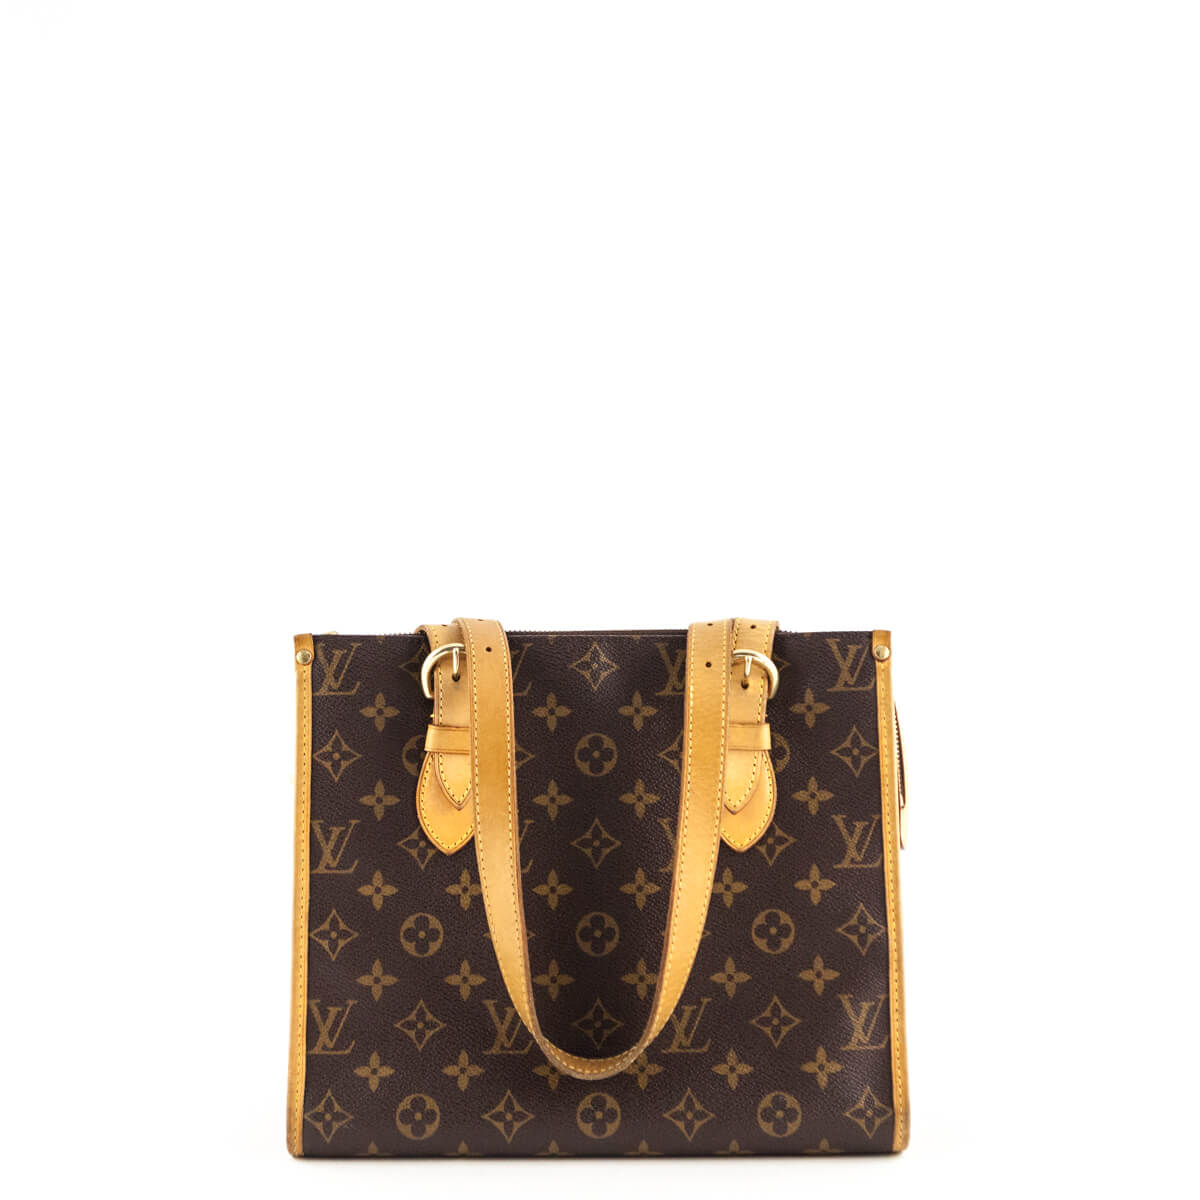 cdc8fe6f4ac1 ... Louis Vuitton Monogram Popincourt Haut - LOVE that BAG - Preowned  Authentic Designer Handbags ...